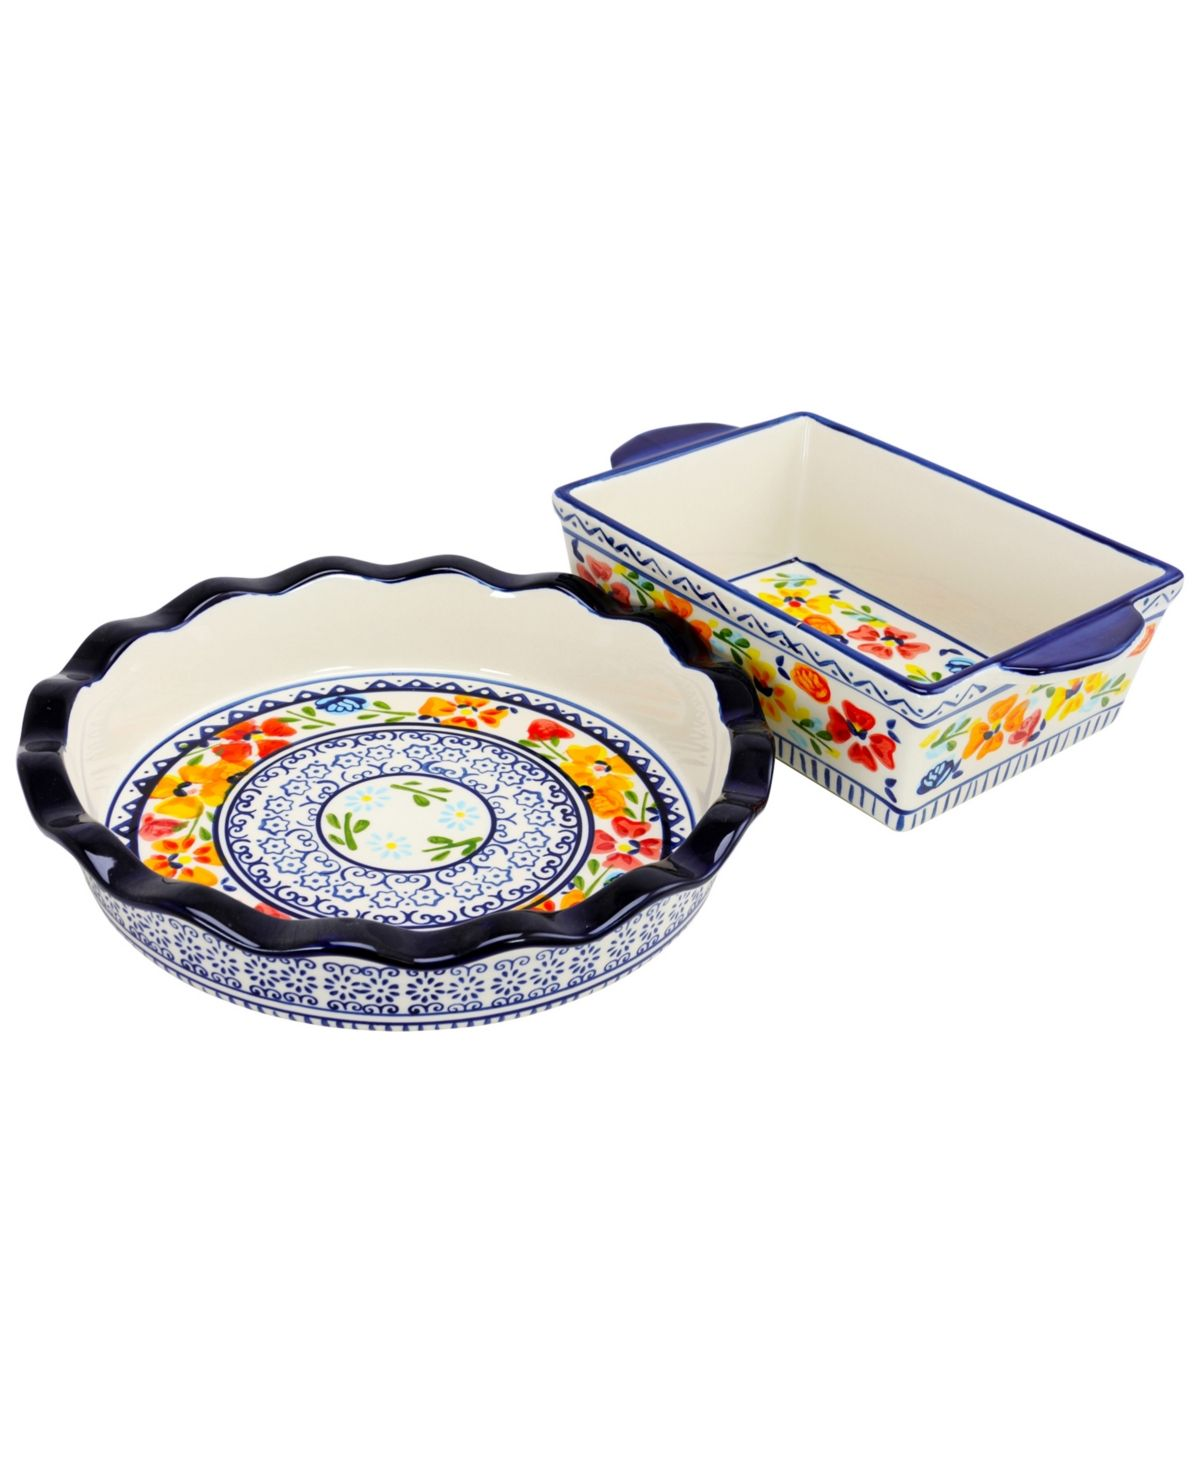 Luxembourg 10 5 Pie Dish And 10 Bakeware Set In Stoneware